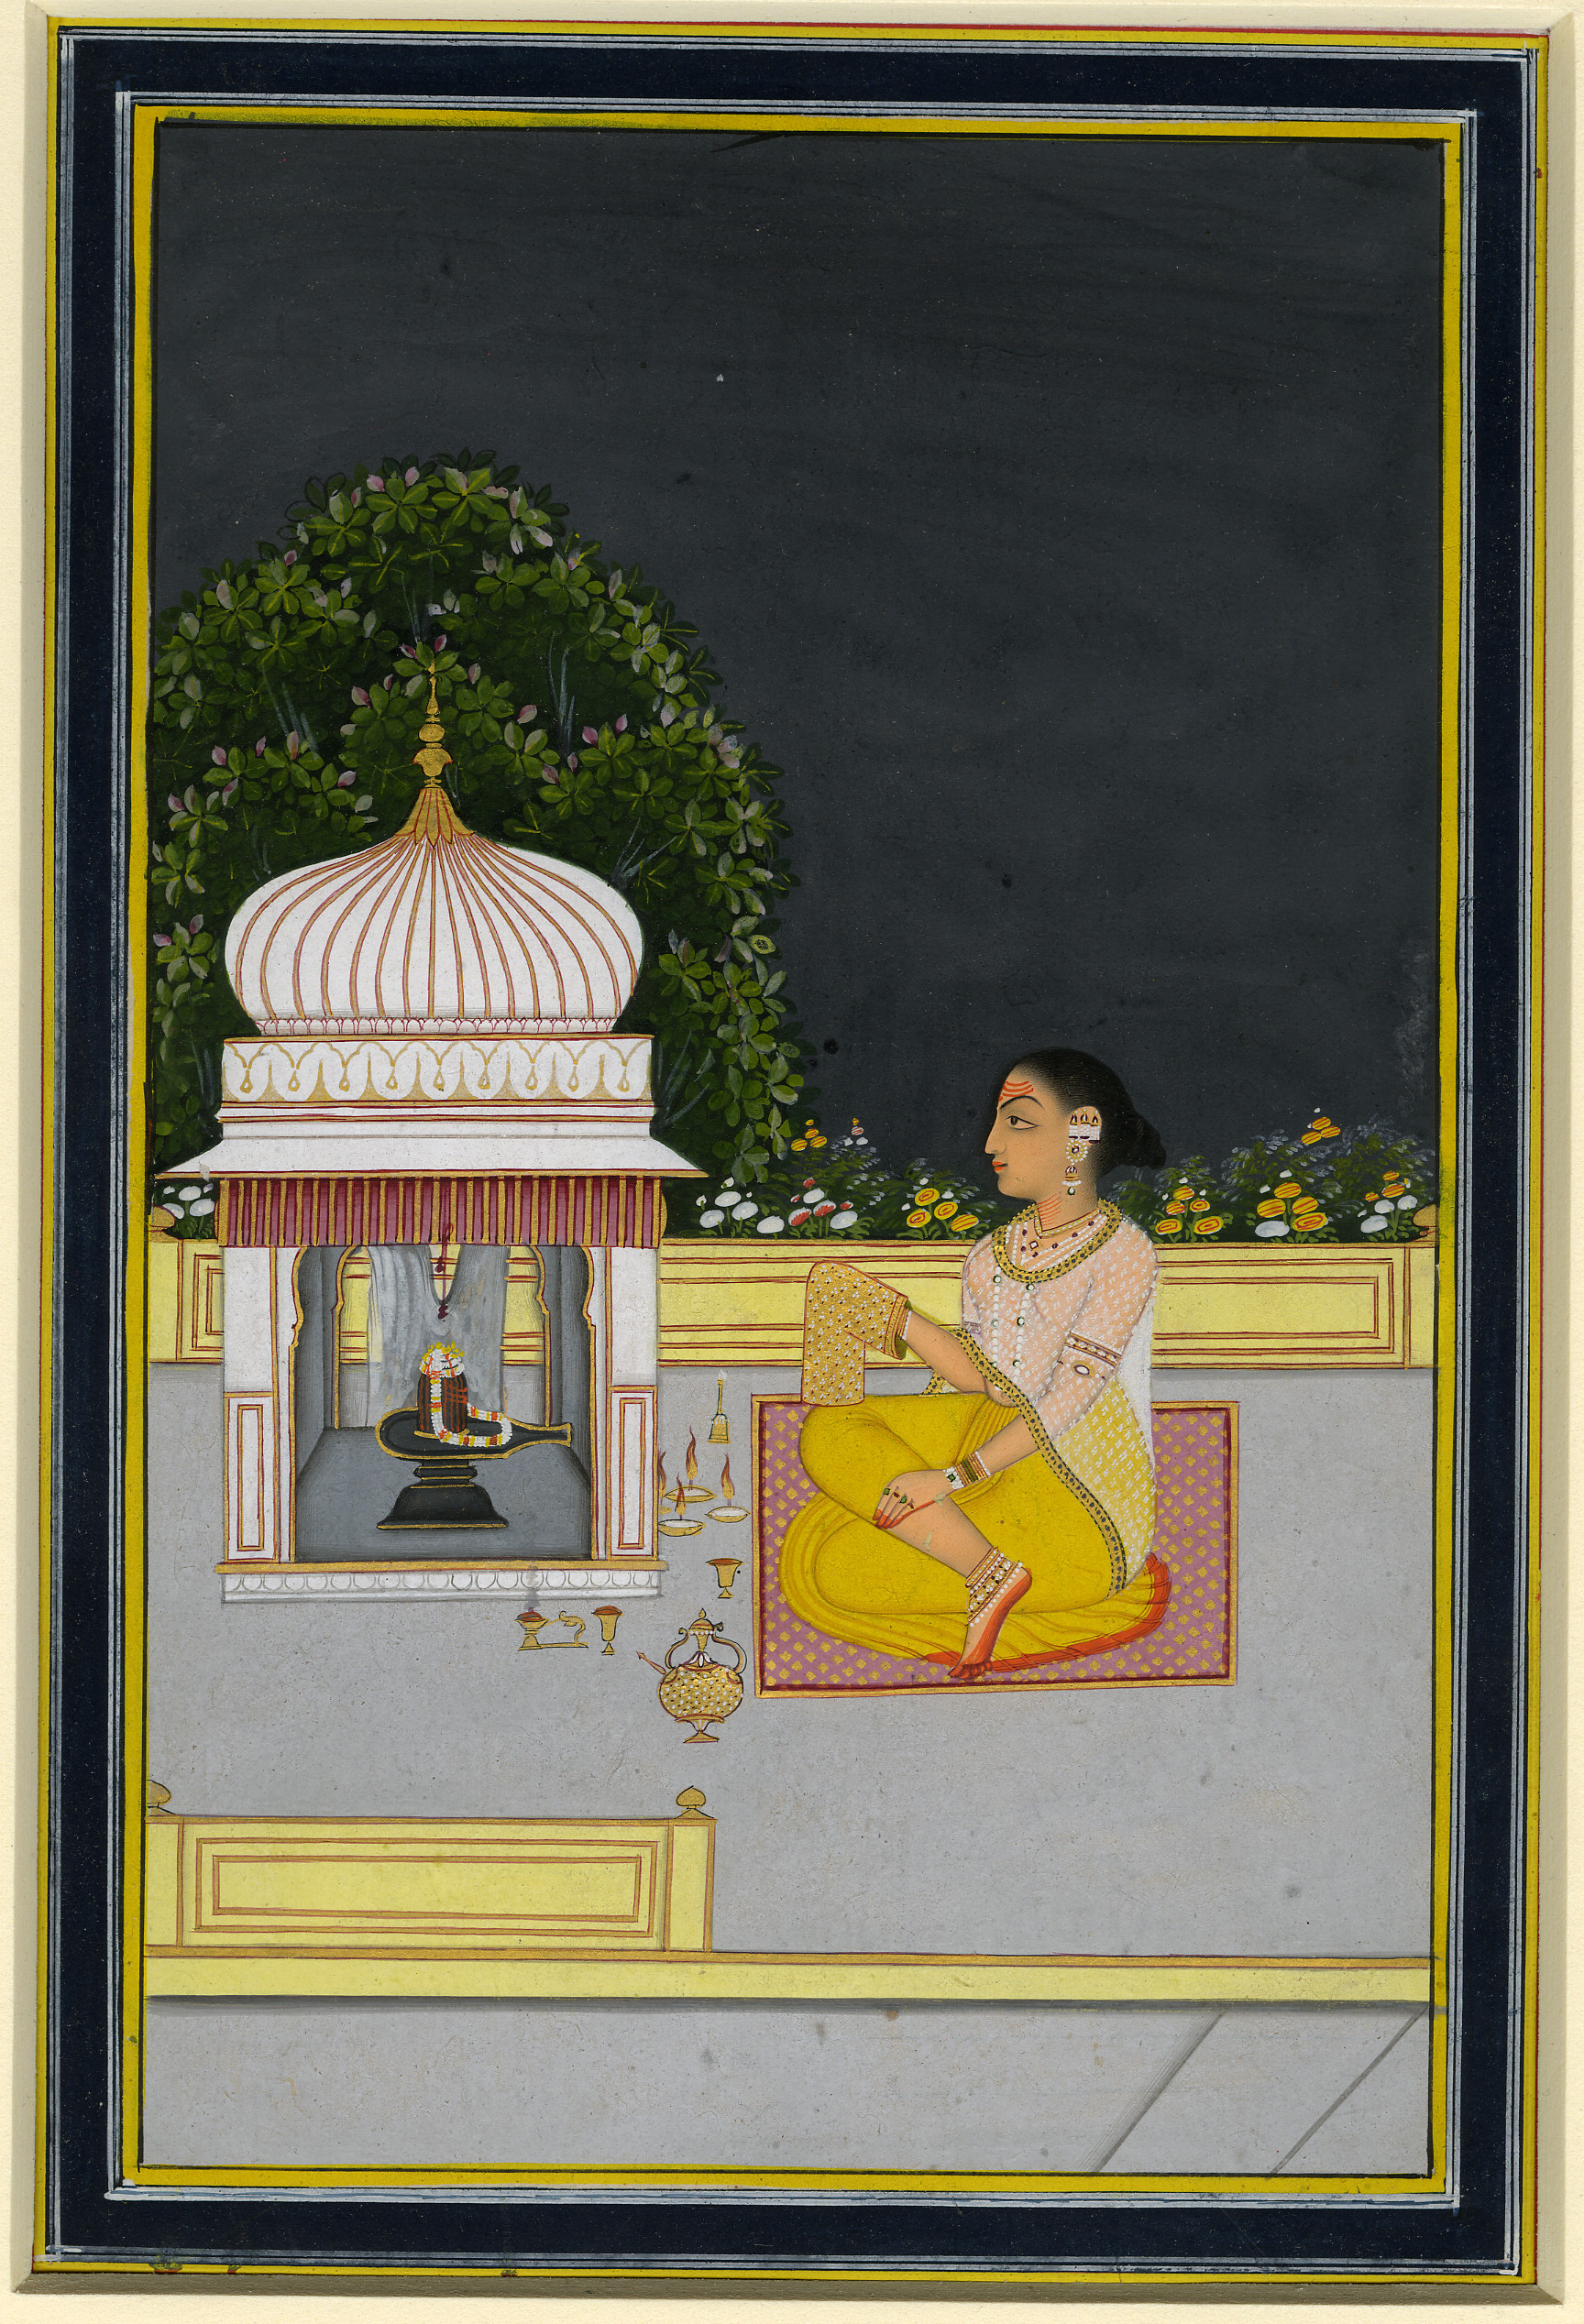 Fig. 1 Woman performing her devotion to the Hindu god Shiva, in the form of a Linga, 18th century, Photograph © Trustees of the British Museum